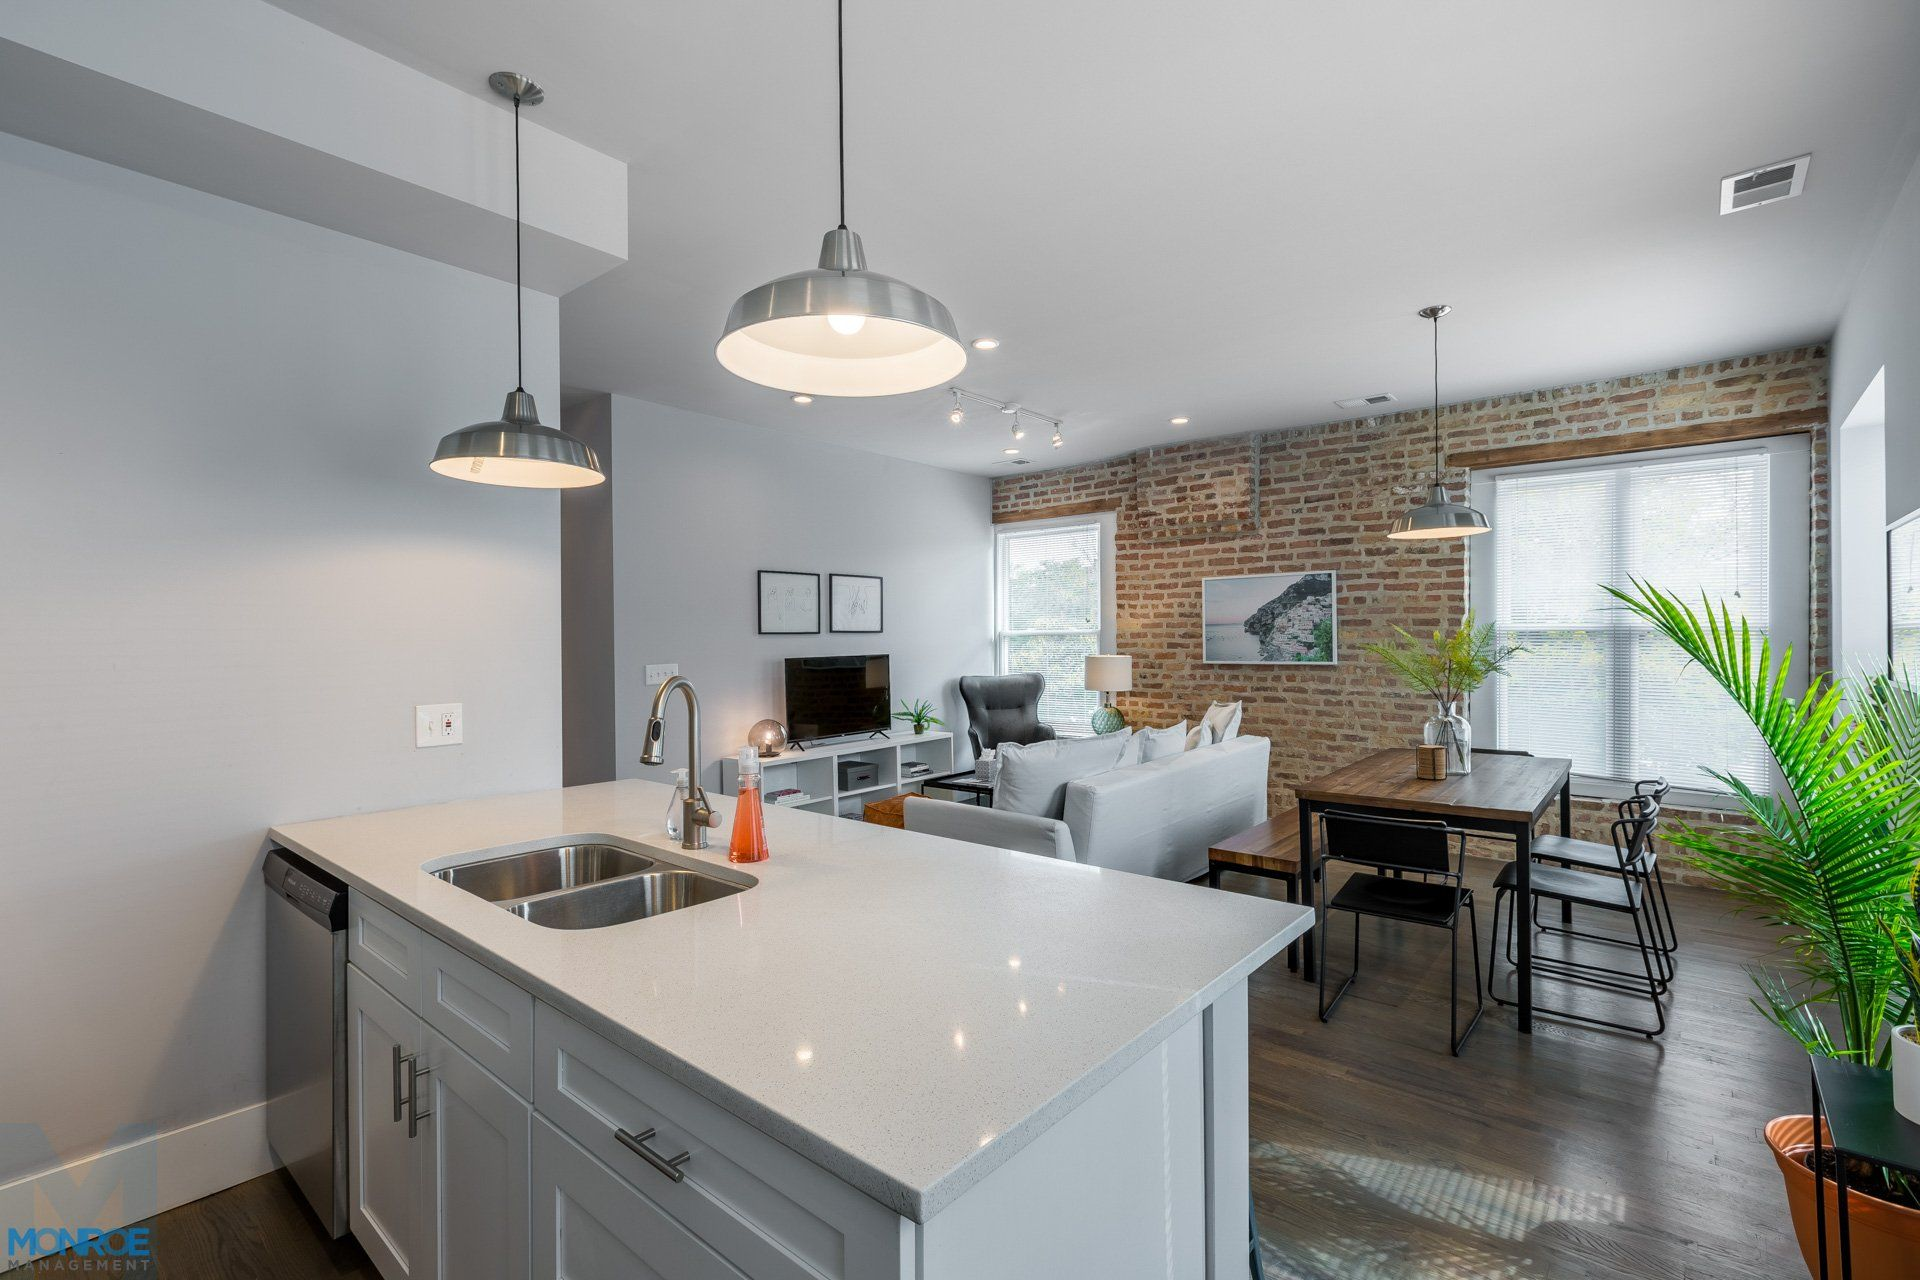 West Loop Apartments For Rent 2 Bedroom 2 Bathroom At 1532 W Lake St 2f Apartments For Rent Chicago Apartment Apartment